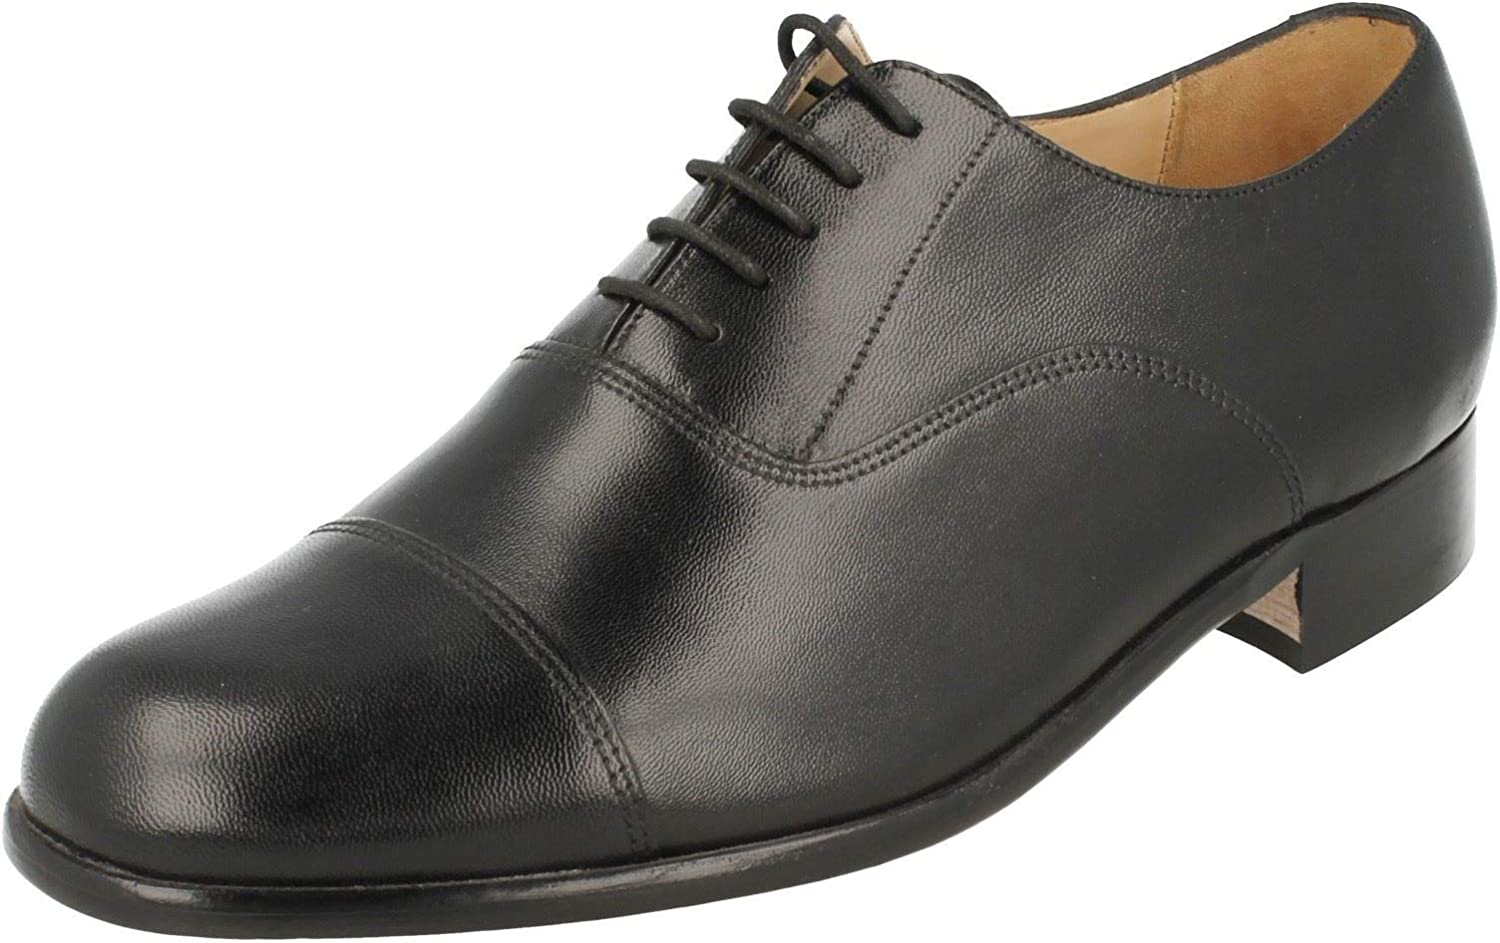 Mens Grenson Formal shoes Fitting G Style - Paddington 35020-01   35020-679